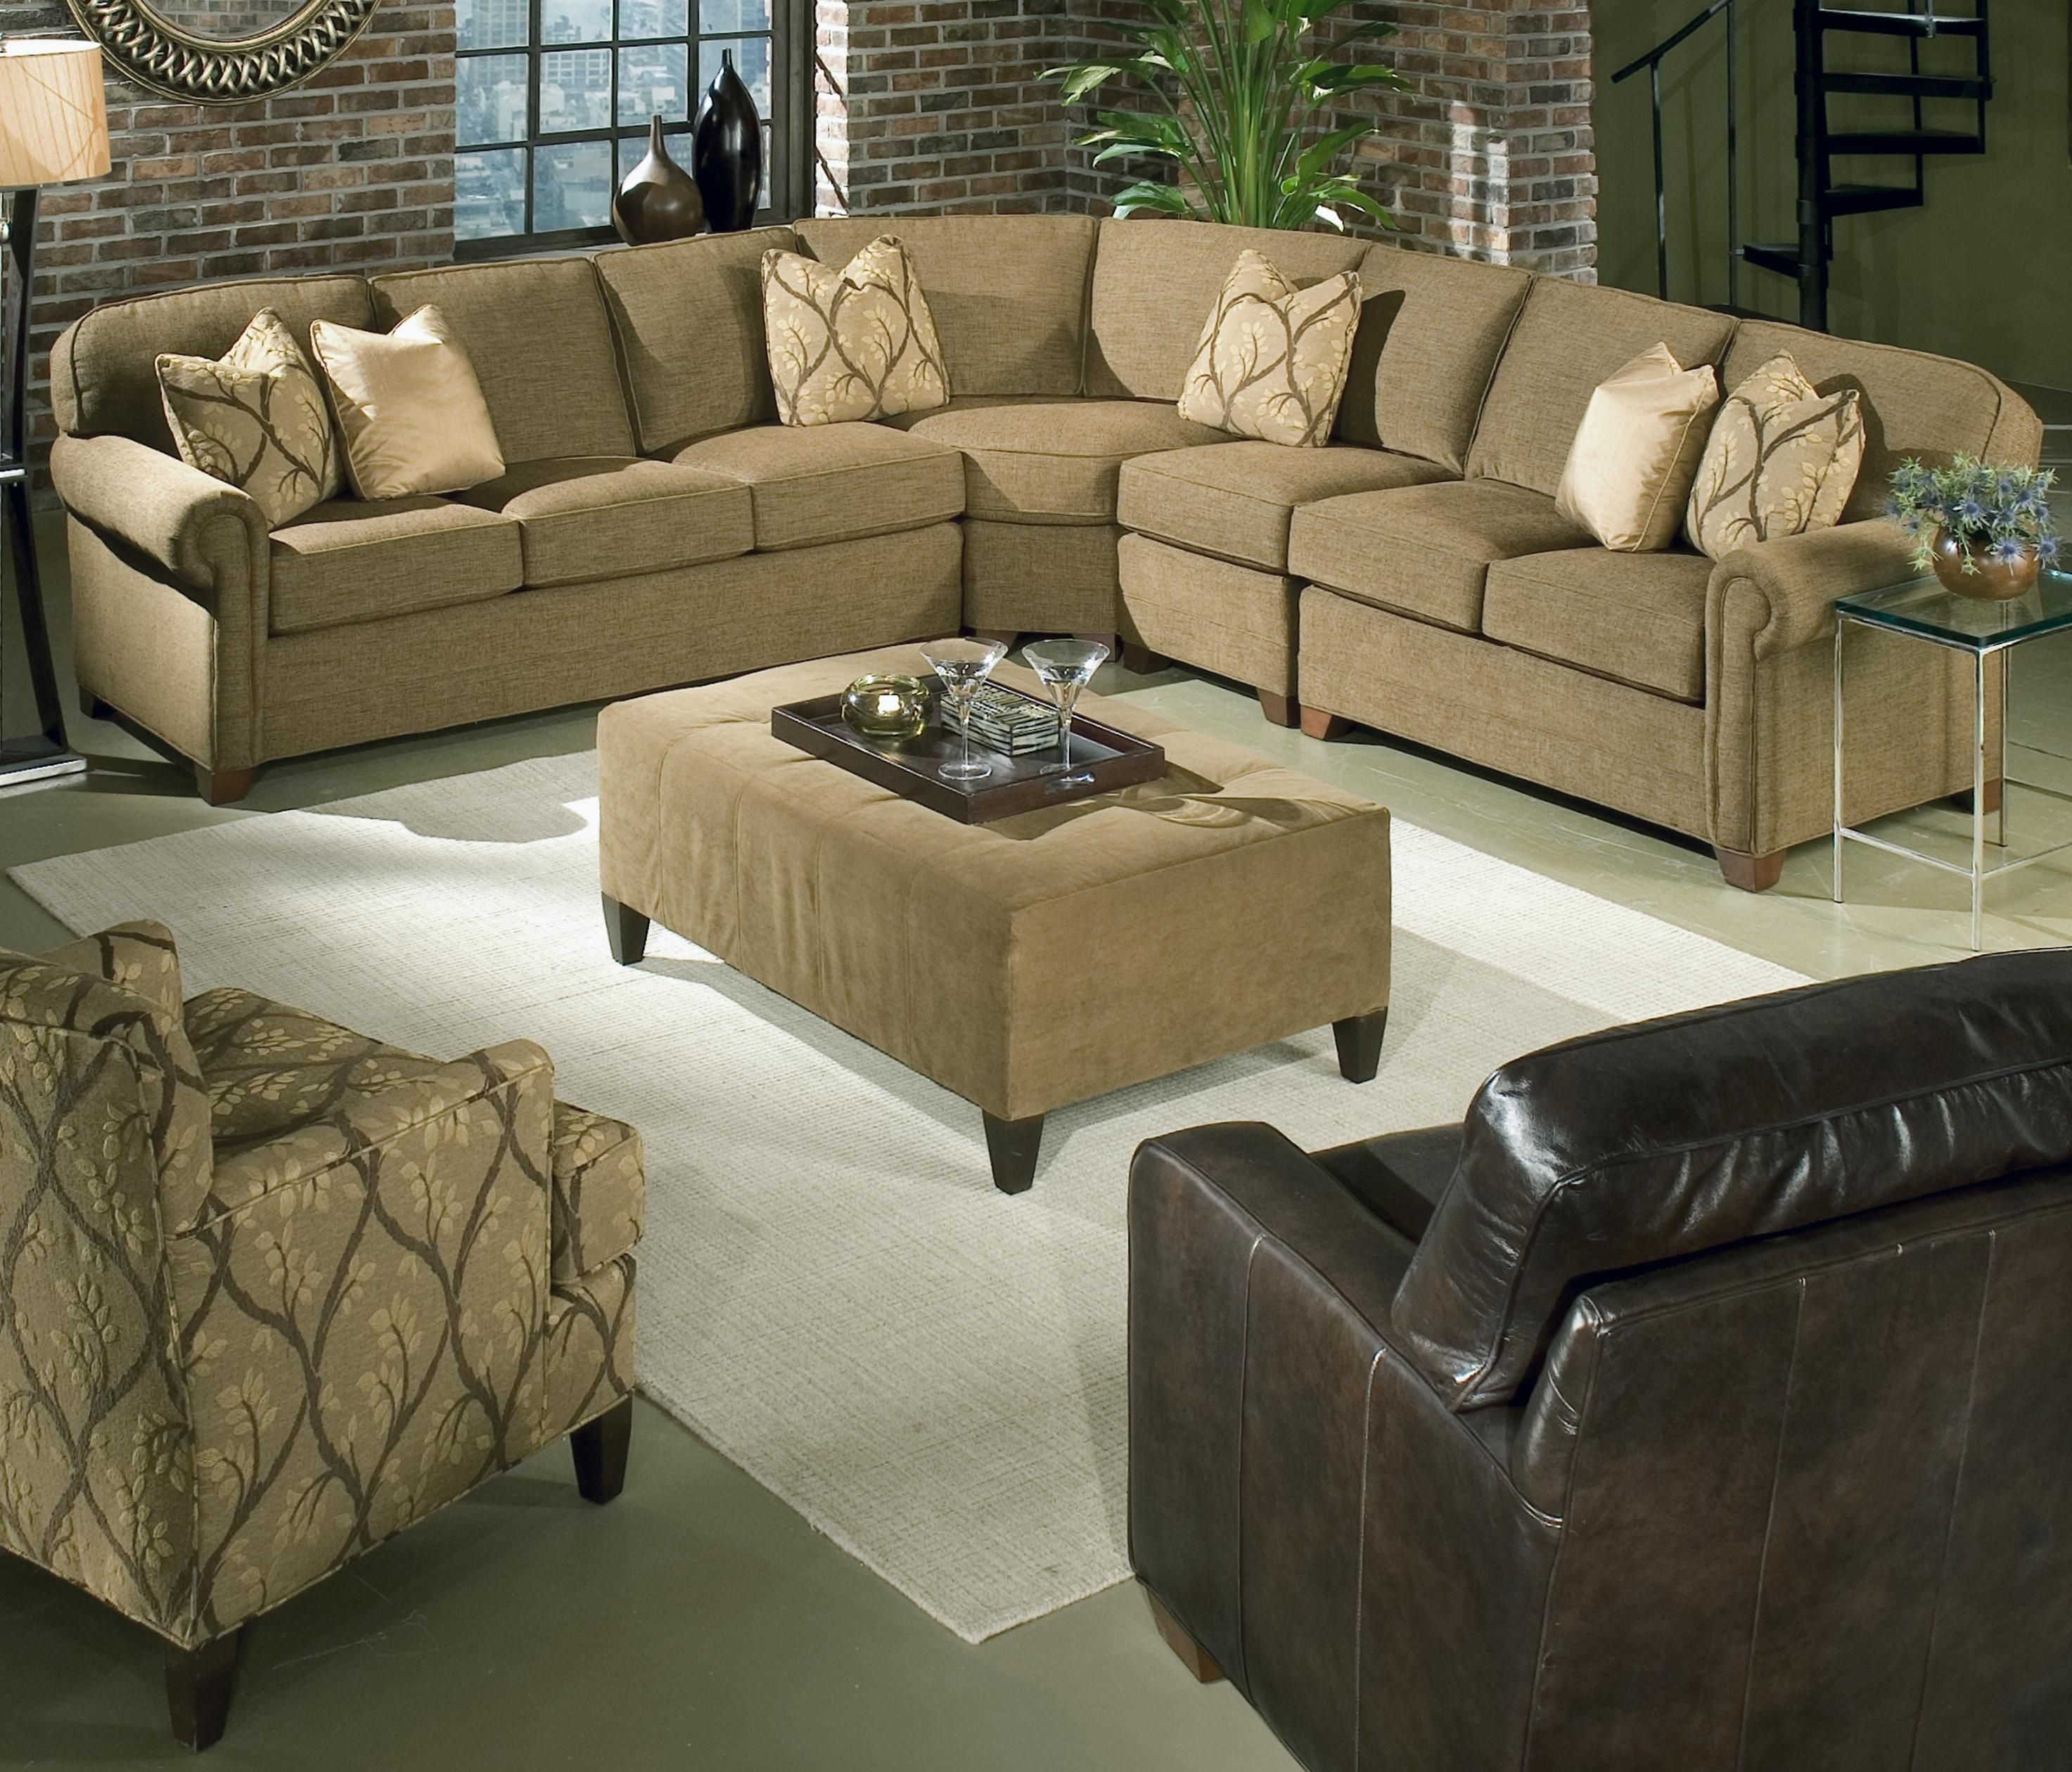 Brighton 4 Piece Sectionalking Hickory | All Things Softball With Regard To Hickory Nc Sectional Sofas (View 5 of 10)